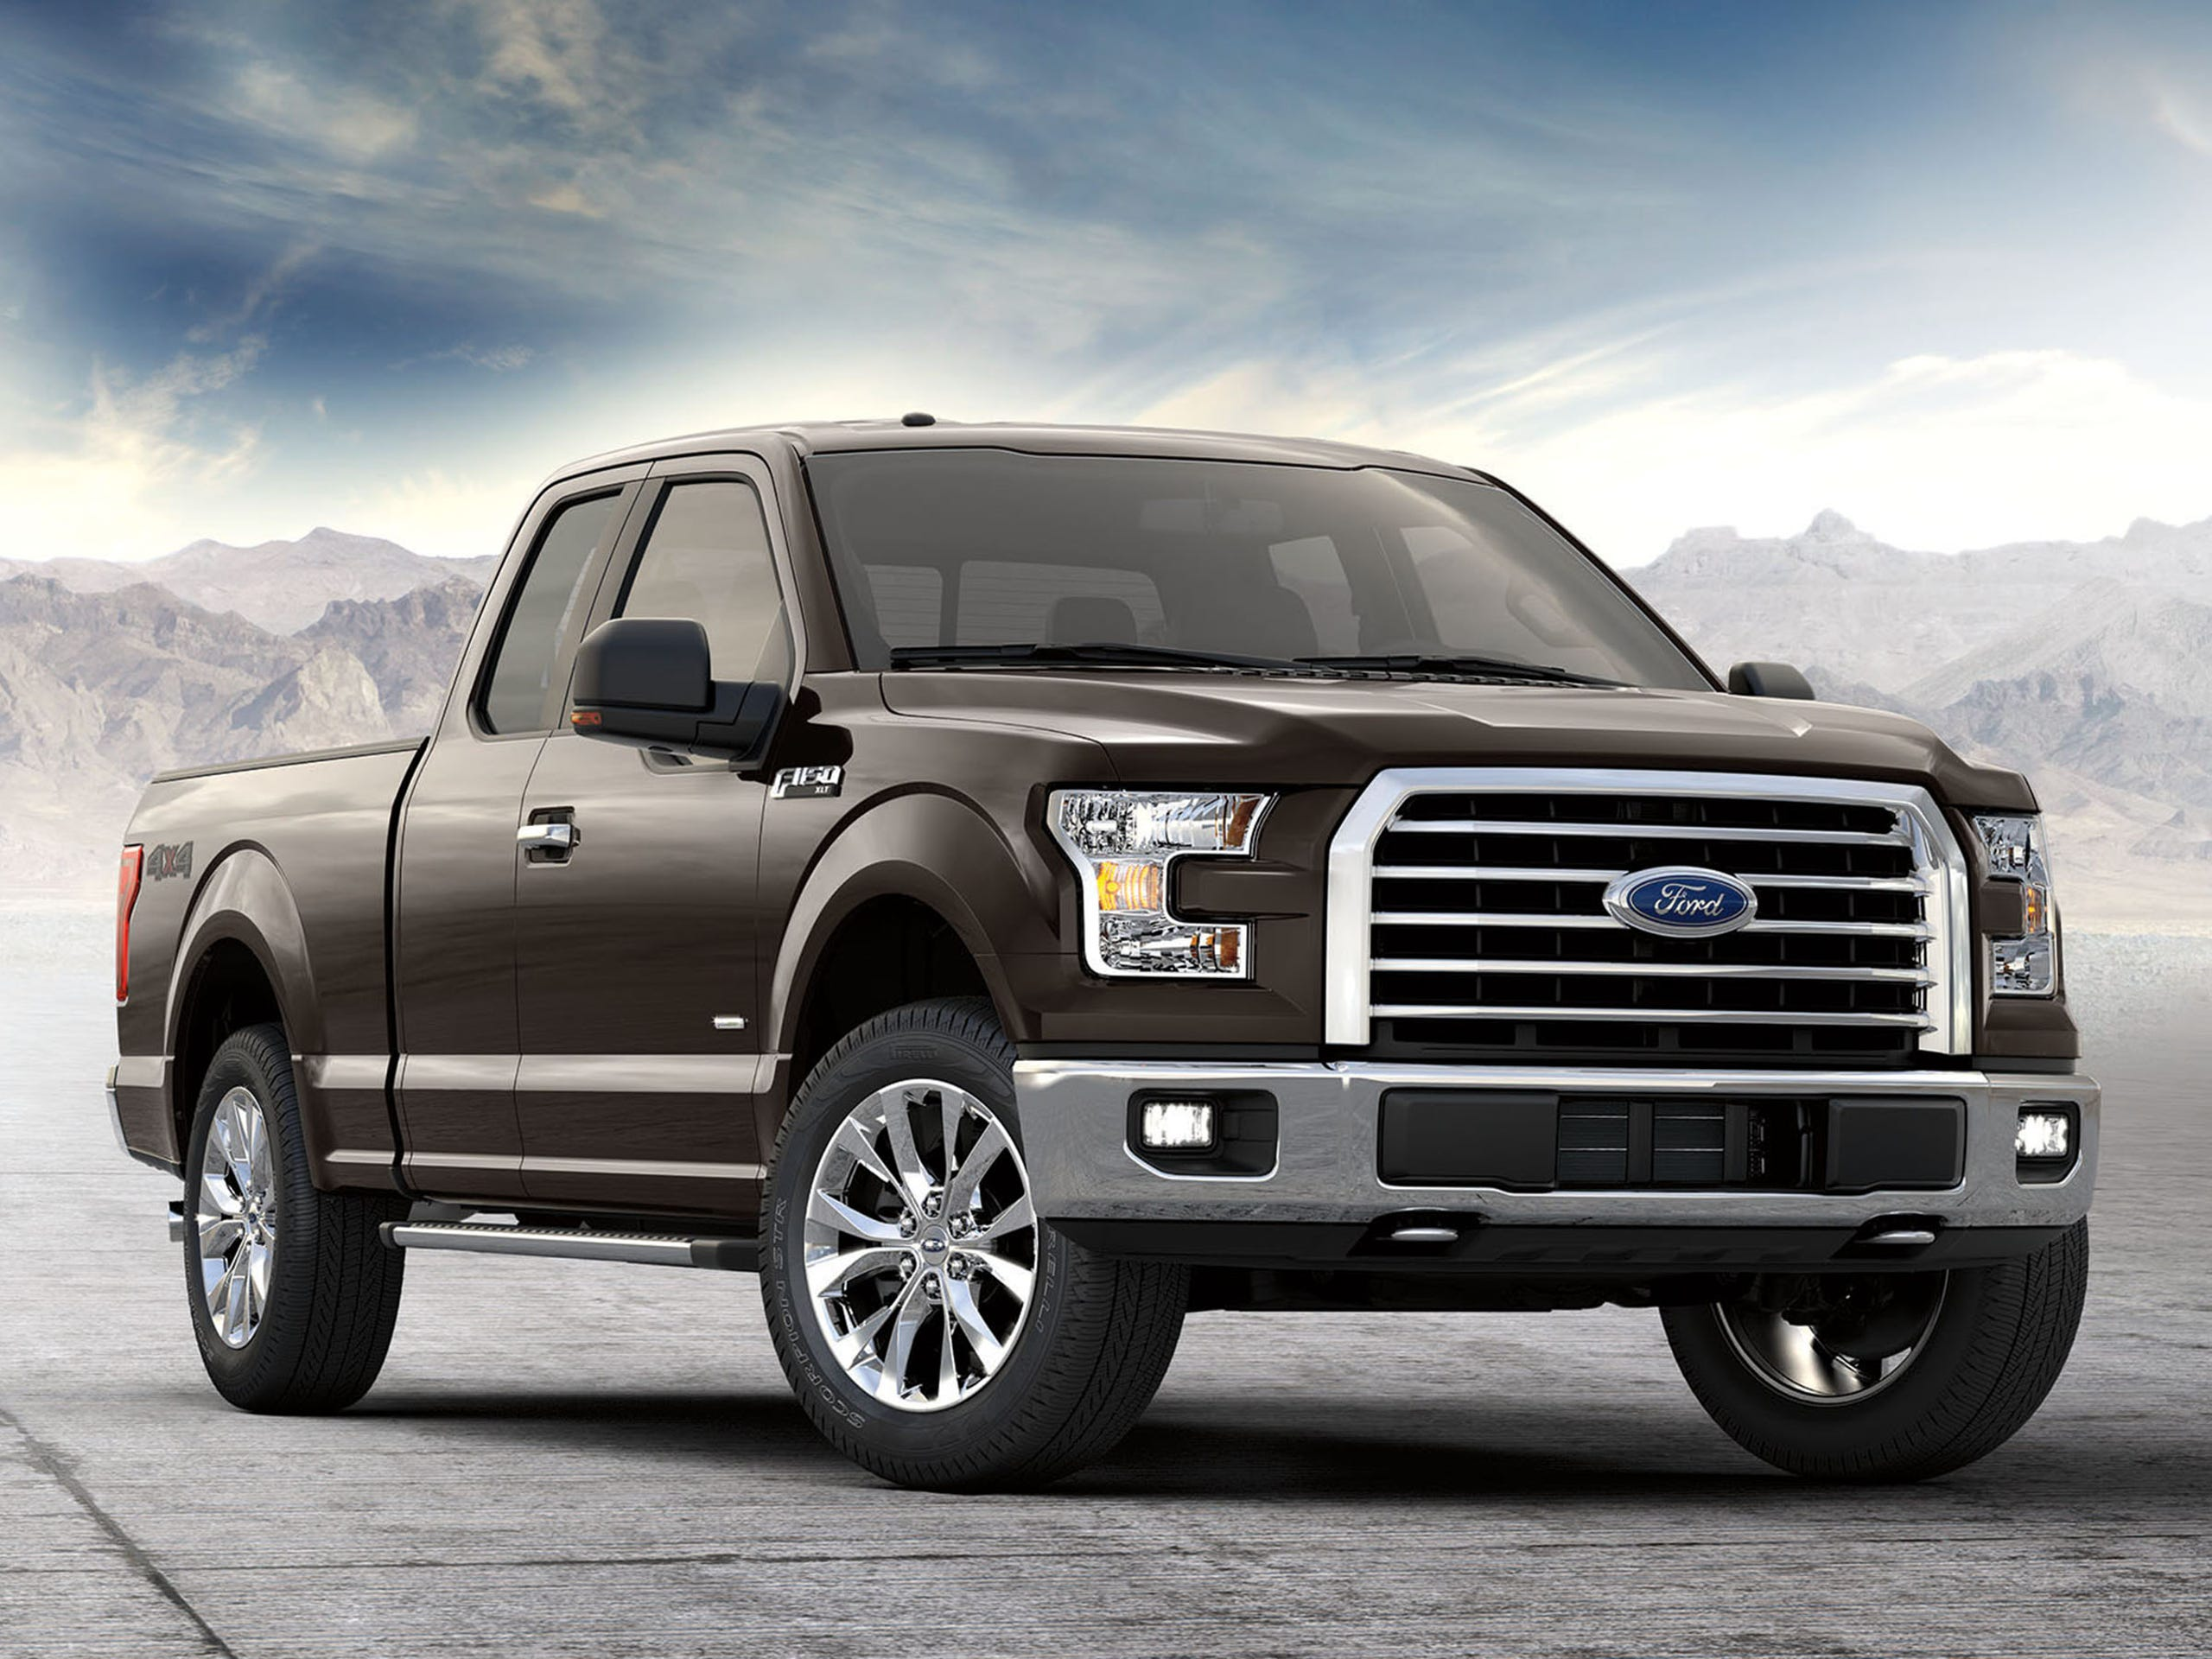 Best Ing Cars And Trucks In Every State